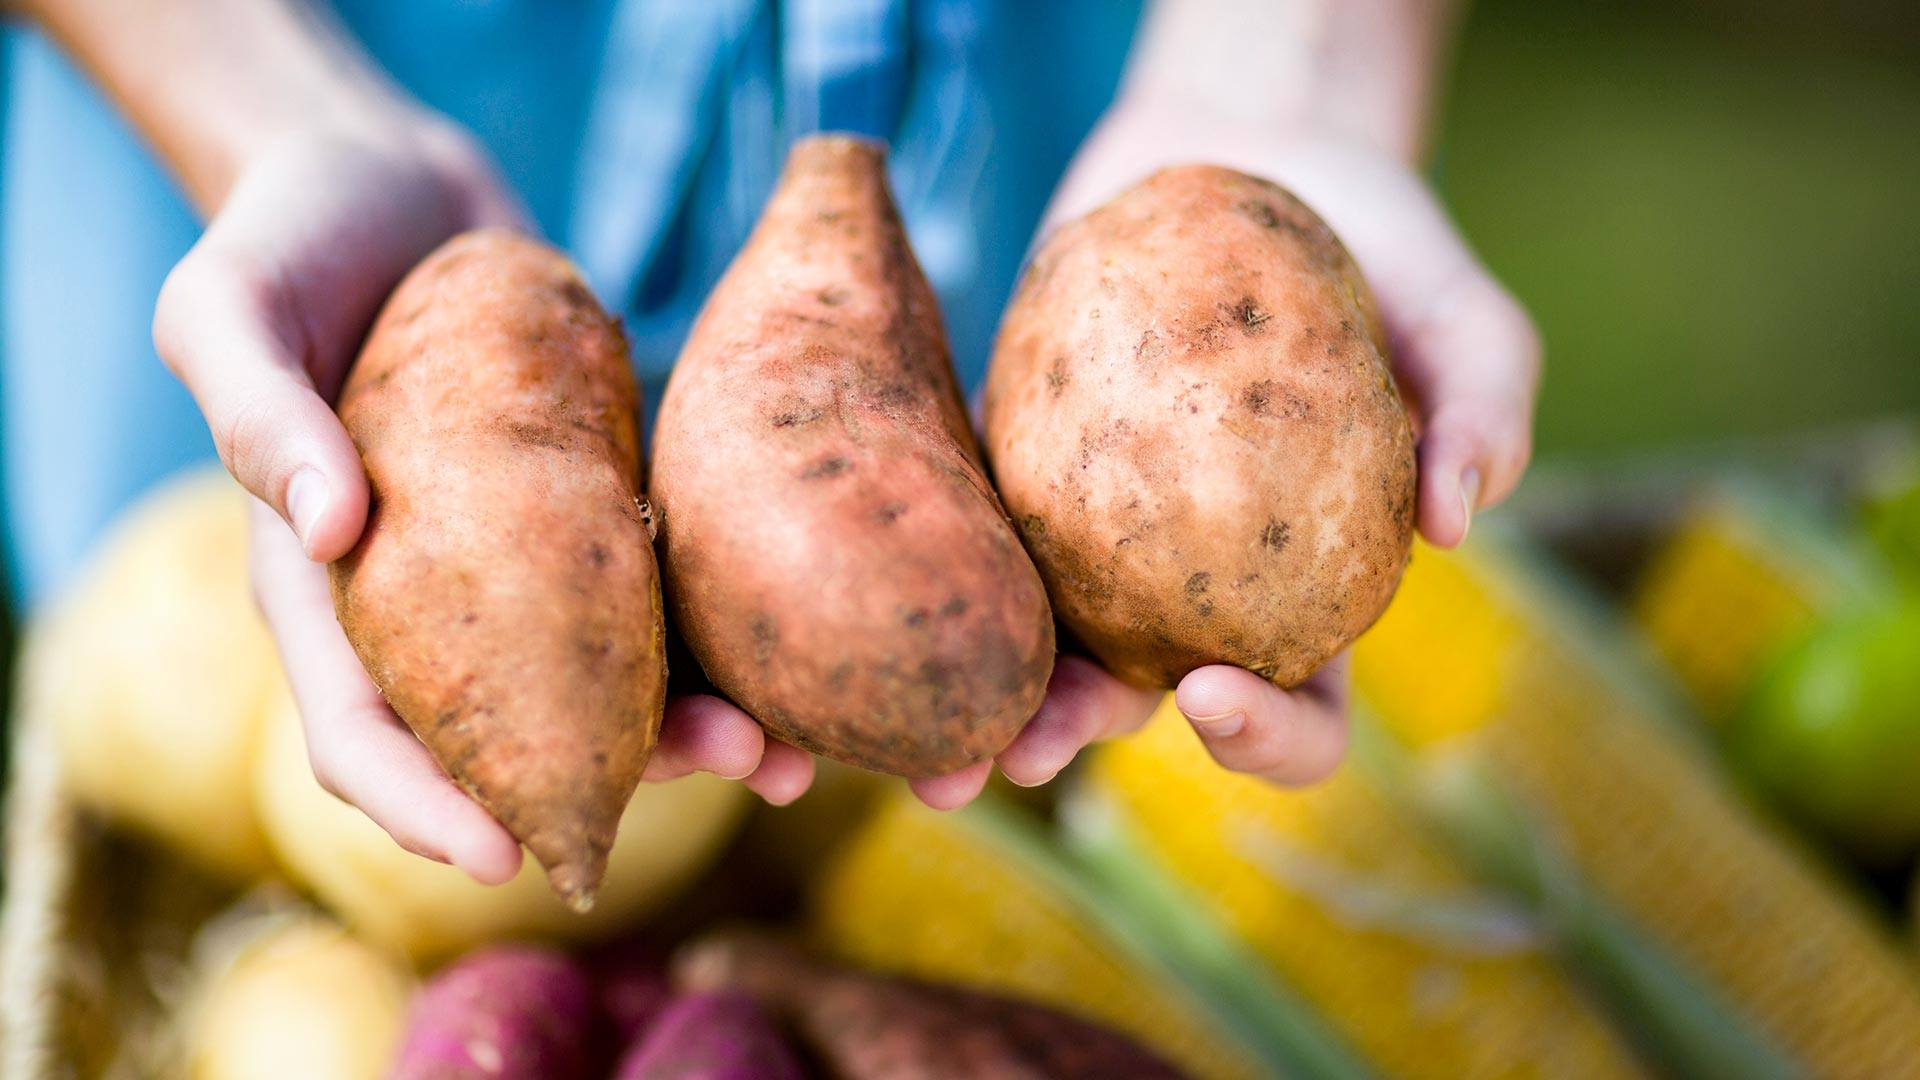 Healthy Foods That Look Like the Body Part They Help